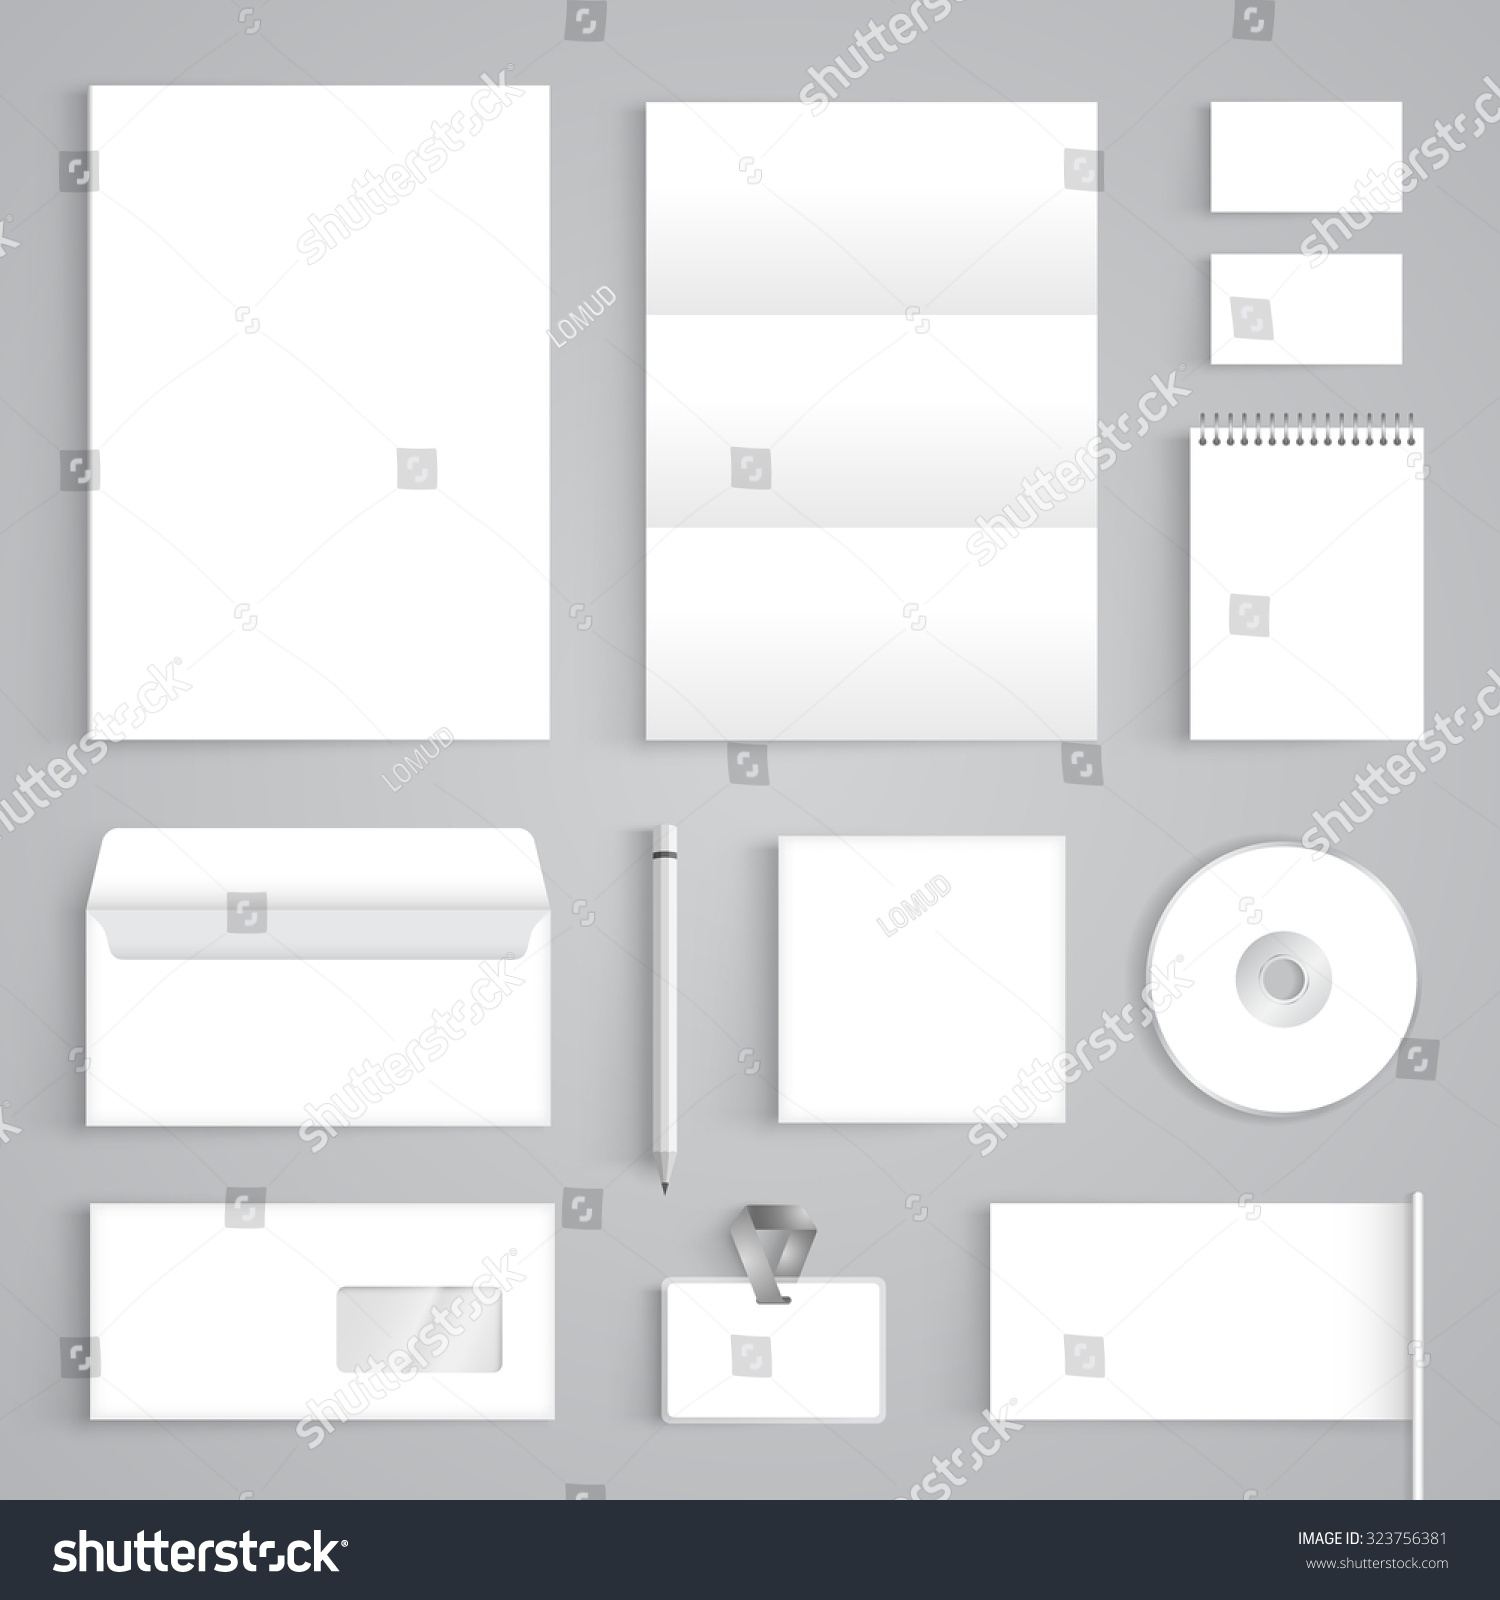 Blank Stationery And Corporate Identity Template Consist: Corporate Identity Branding Blank Mockup Template. Vector